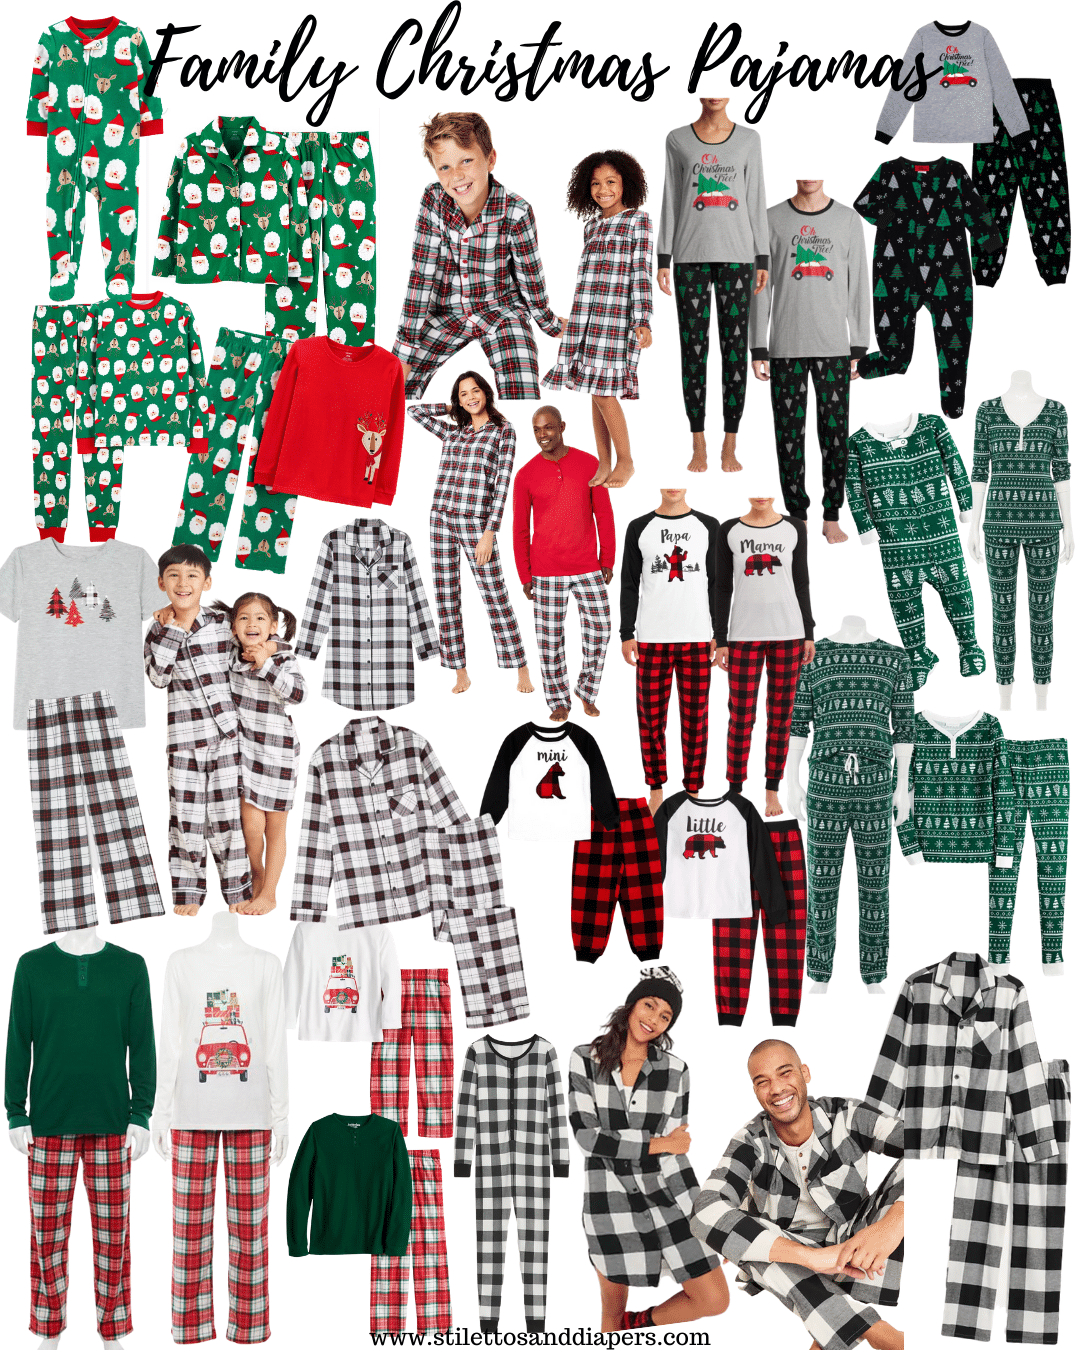 Matching Family Christmas Pajamas, Best of 2020, Stilettos and Diapers